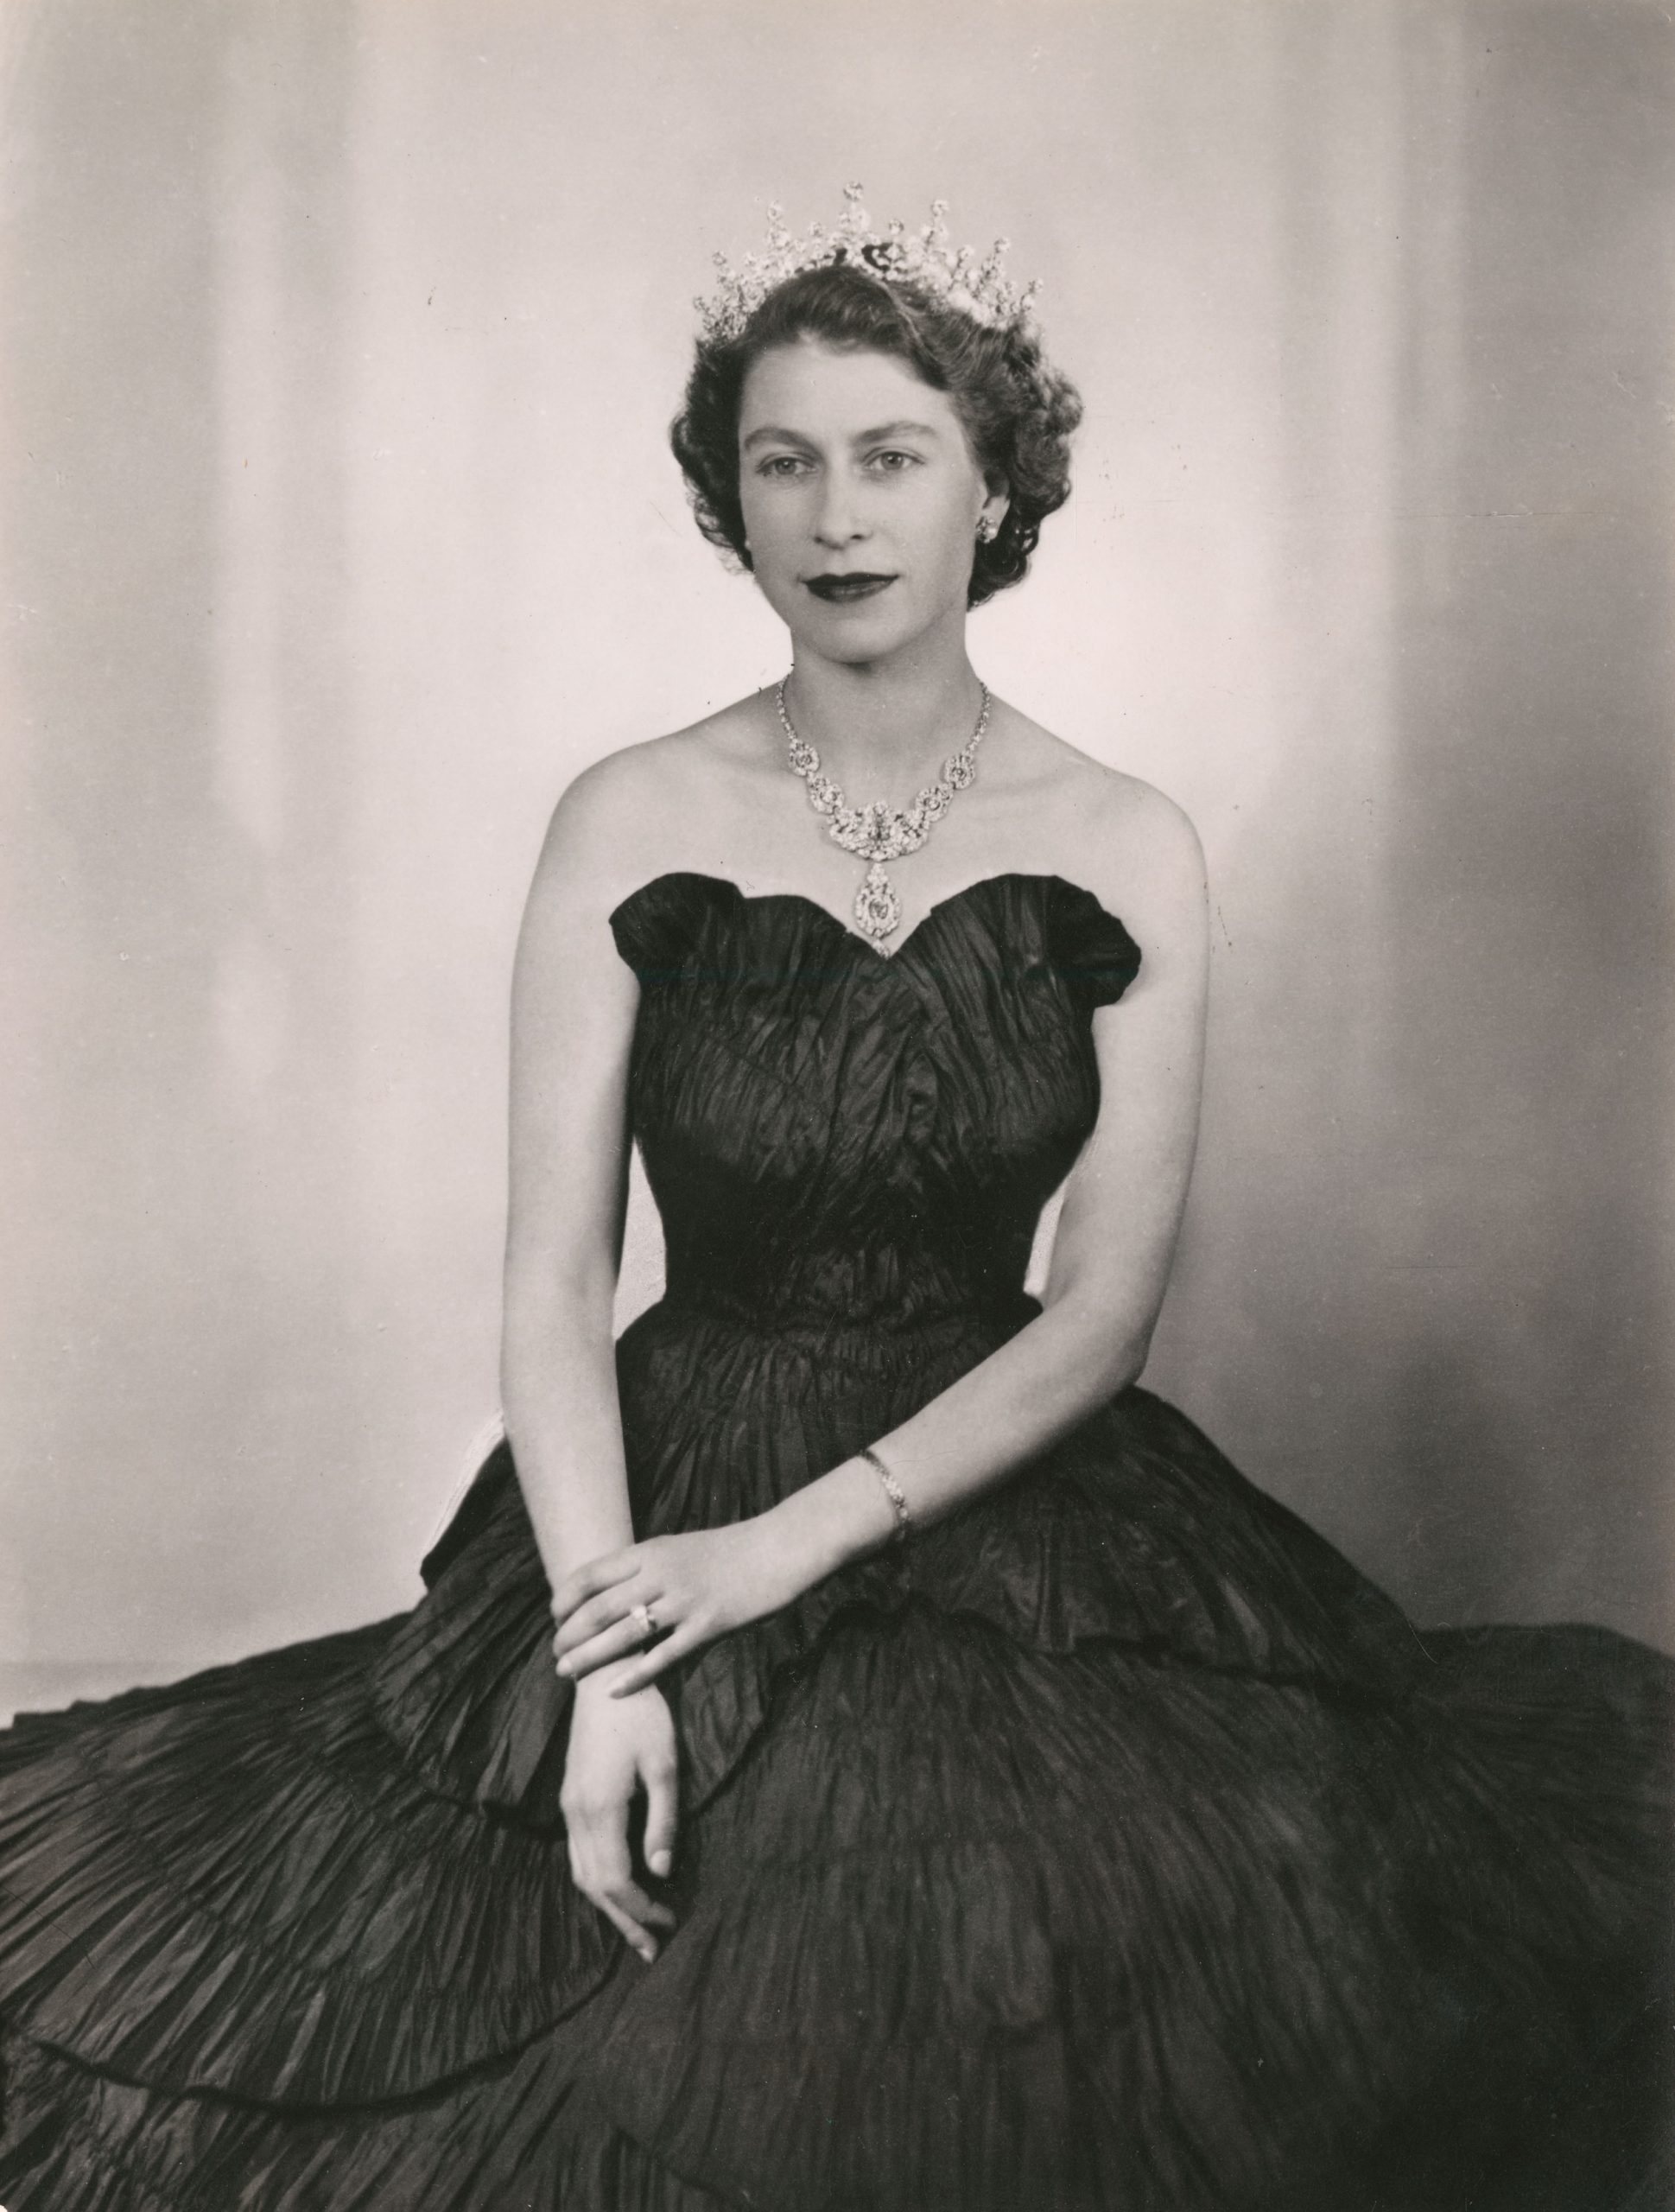 Black and white image of the Queen in a black ruffled dress wearing a tiara.